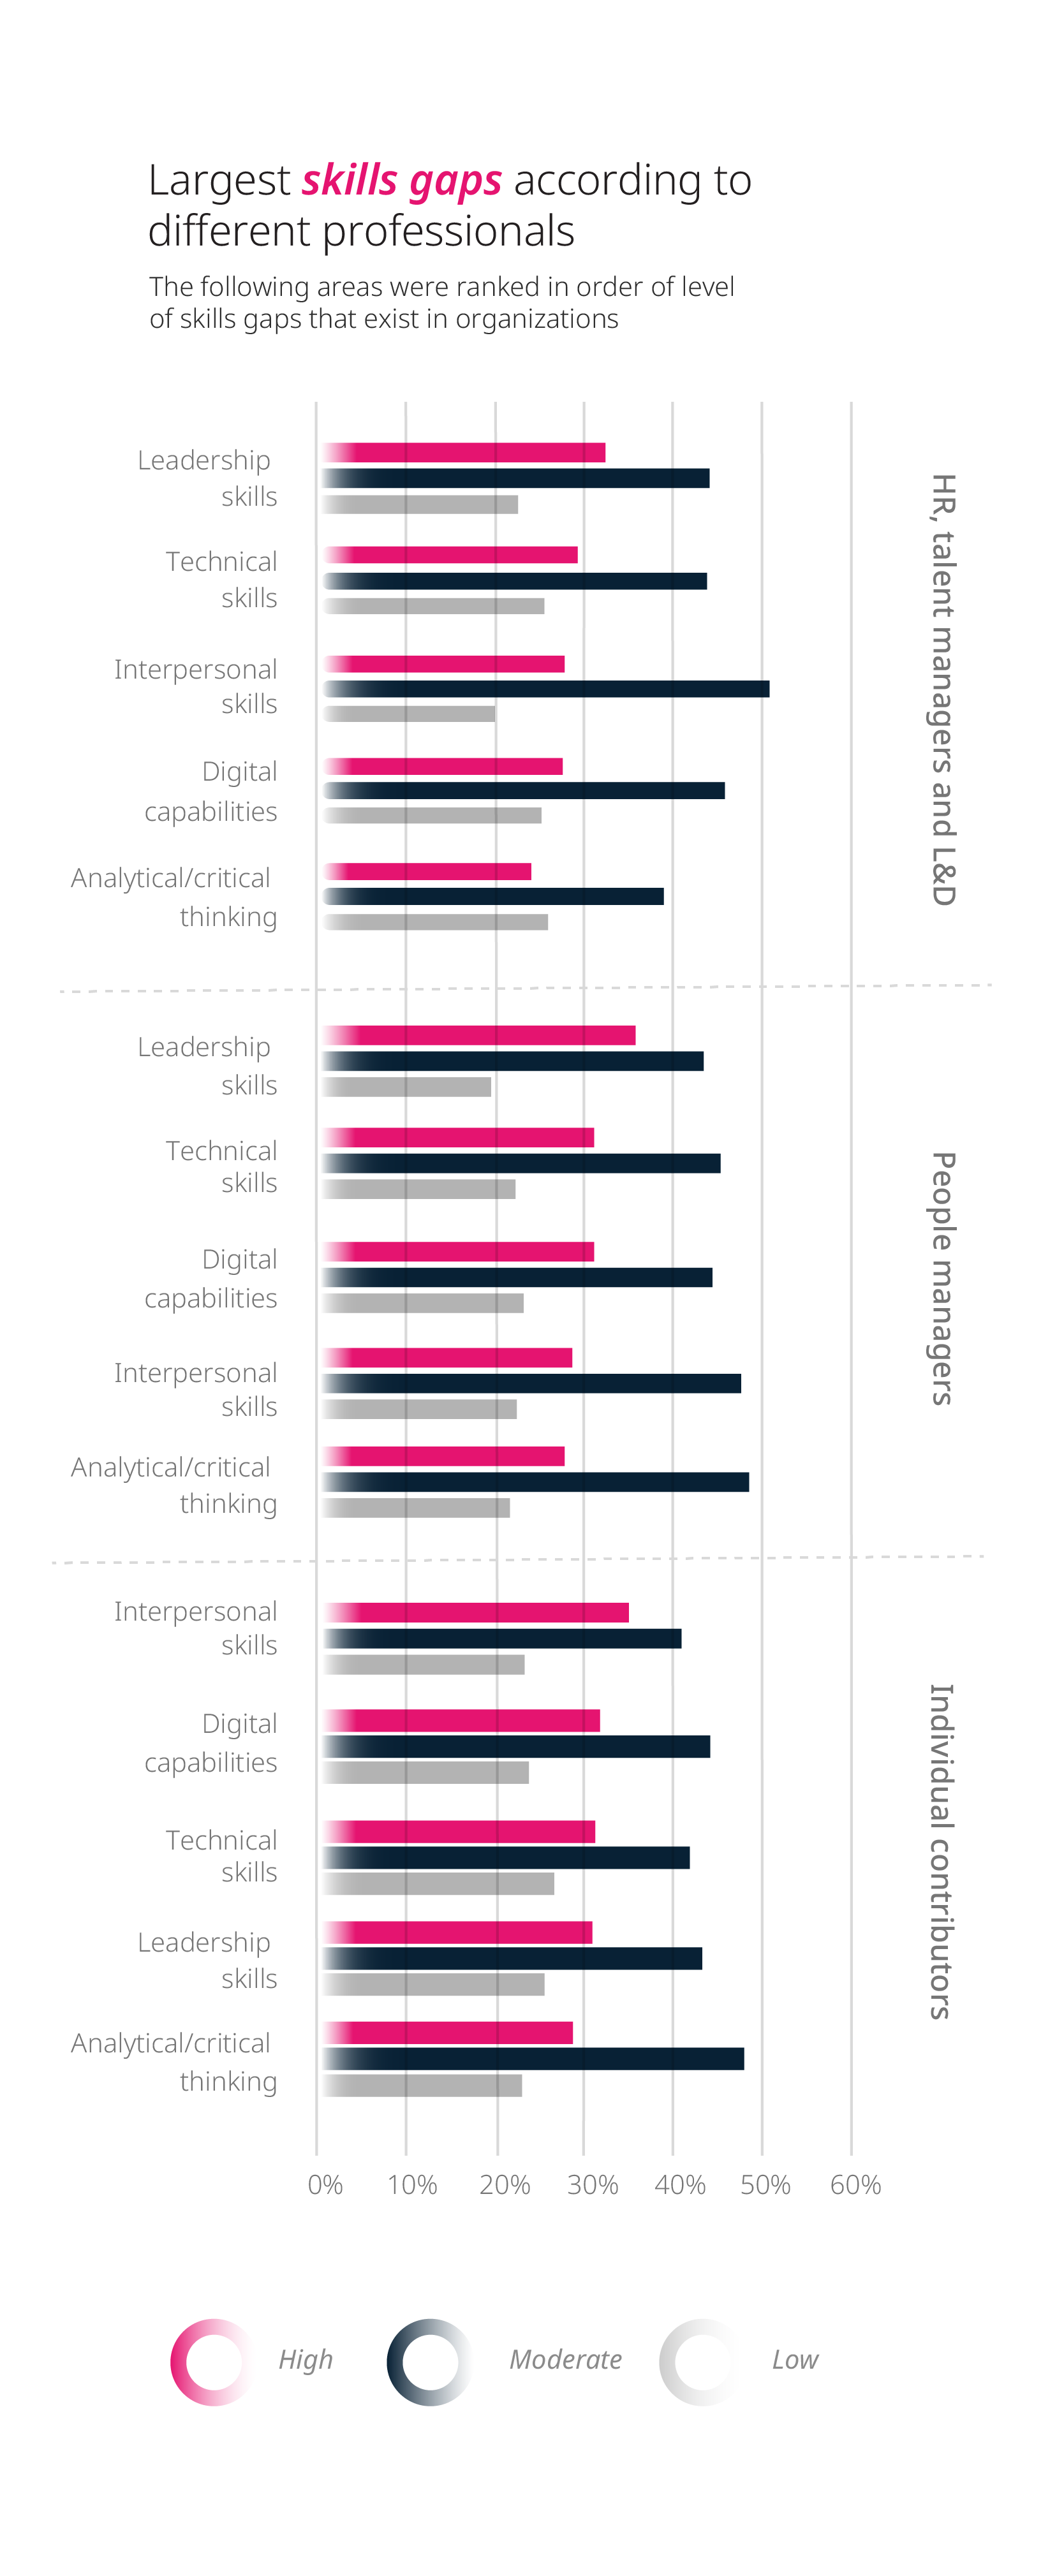 The largest skills gap according to different professionals